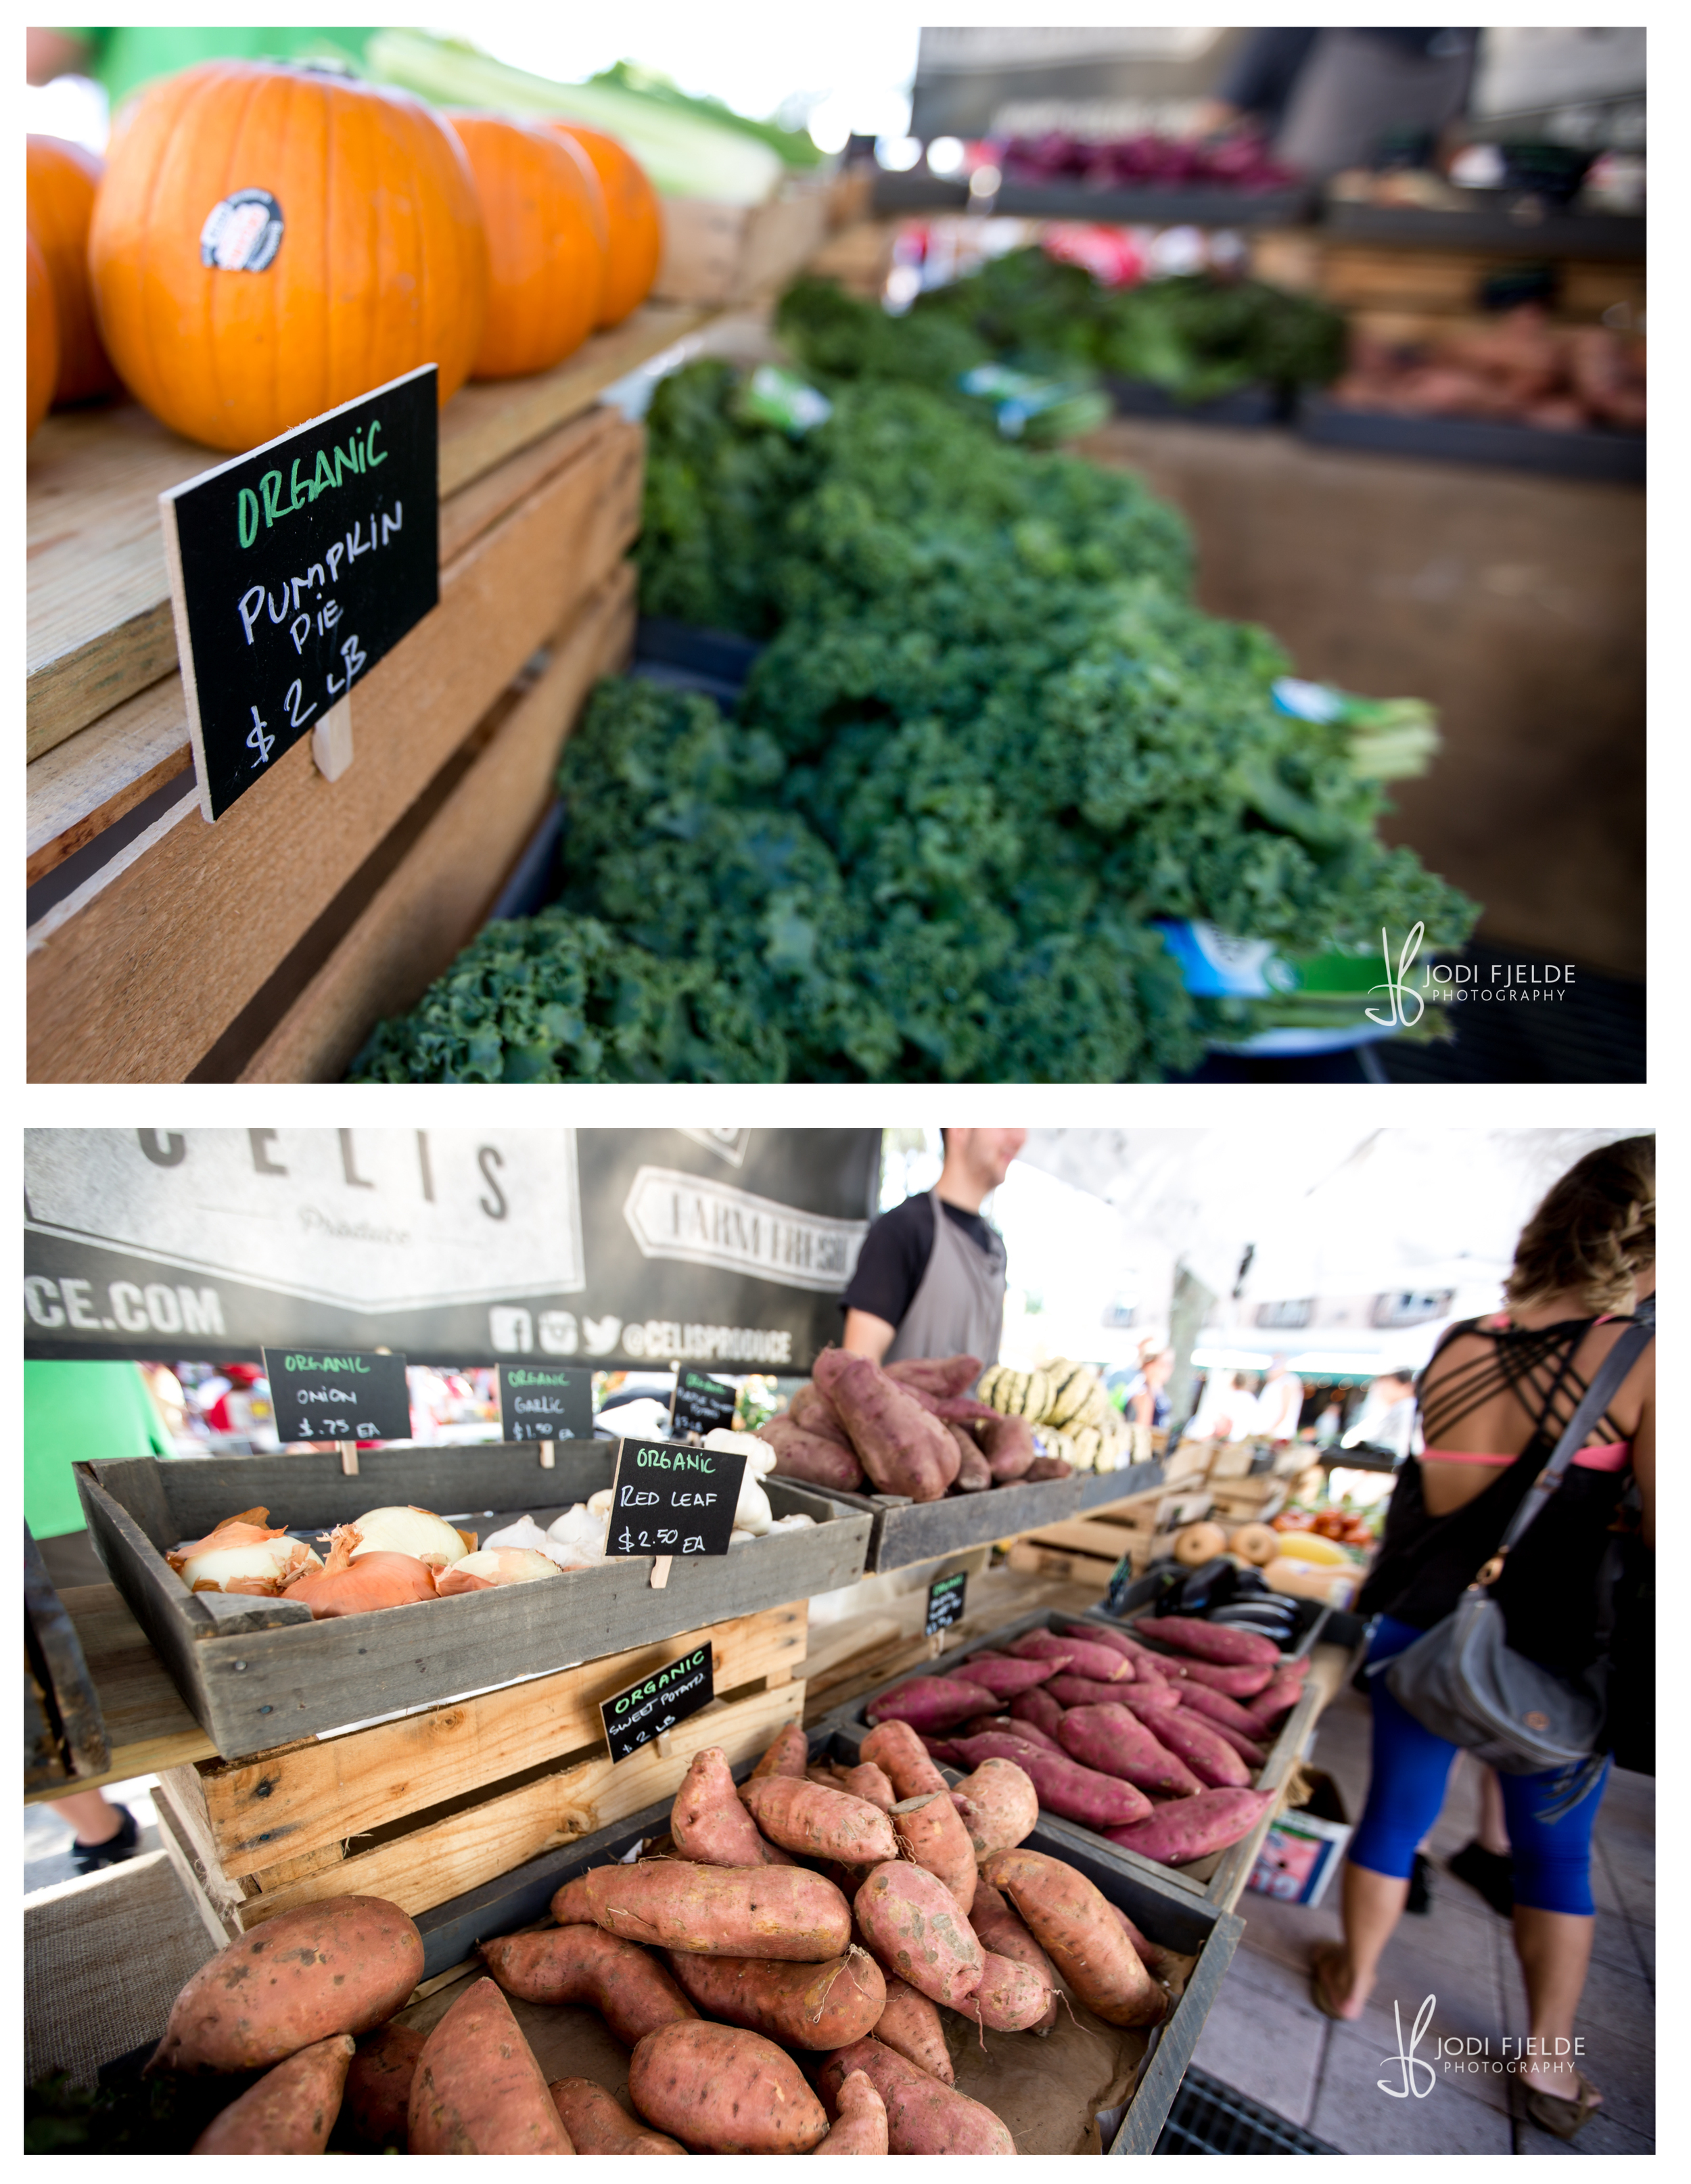 West_Palm_Beach_Green_Market_Organic_jodi_fjelde_Photography_2.jpg